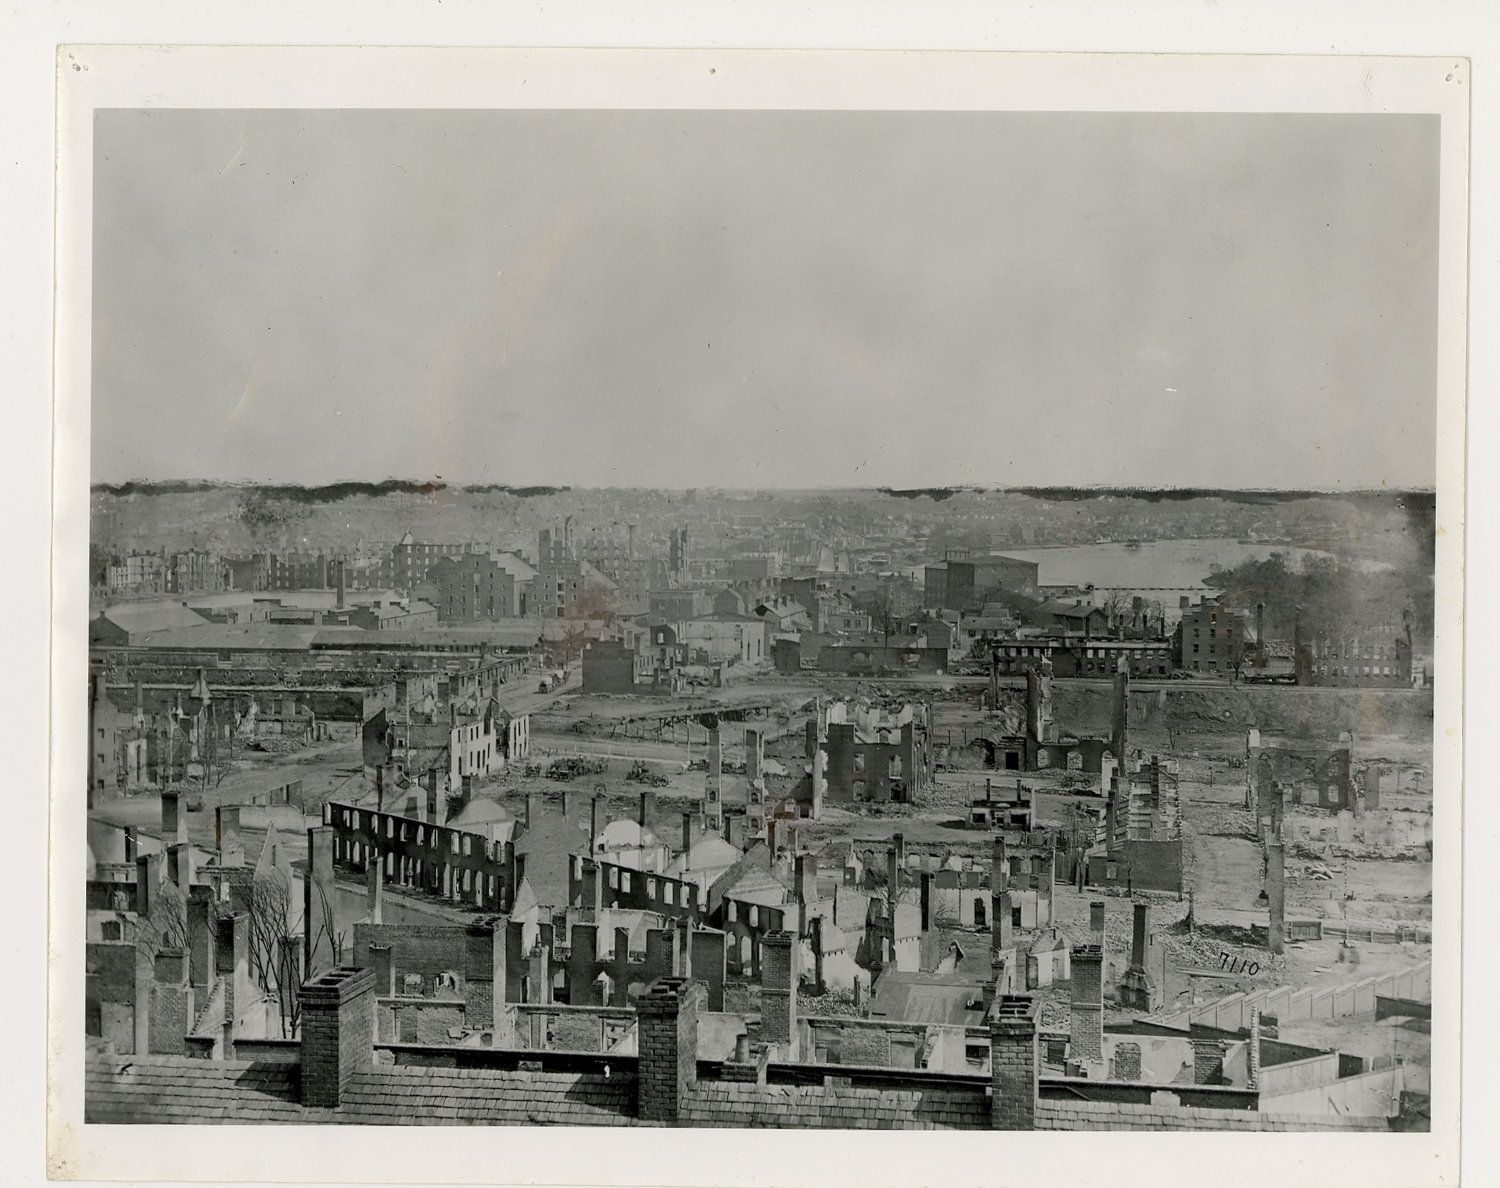 Civil War Photos and Images-Medical and Hospital]